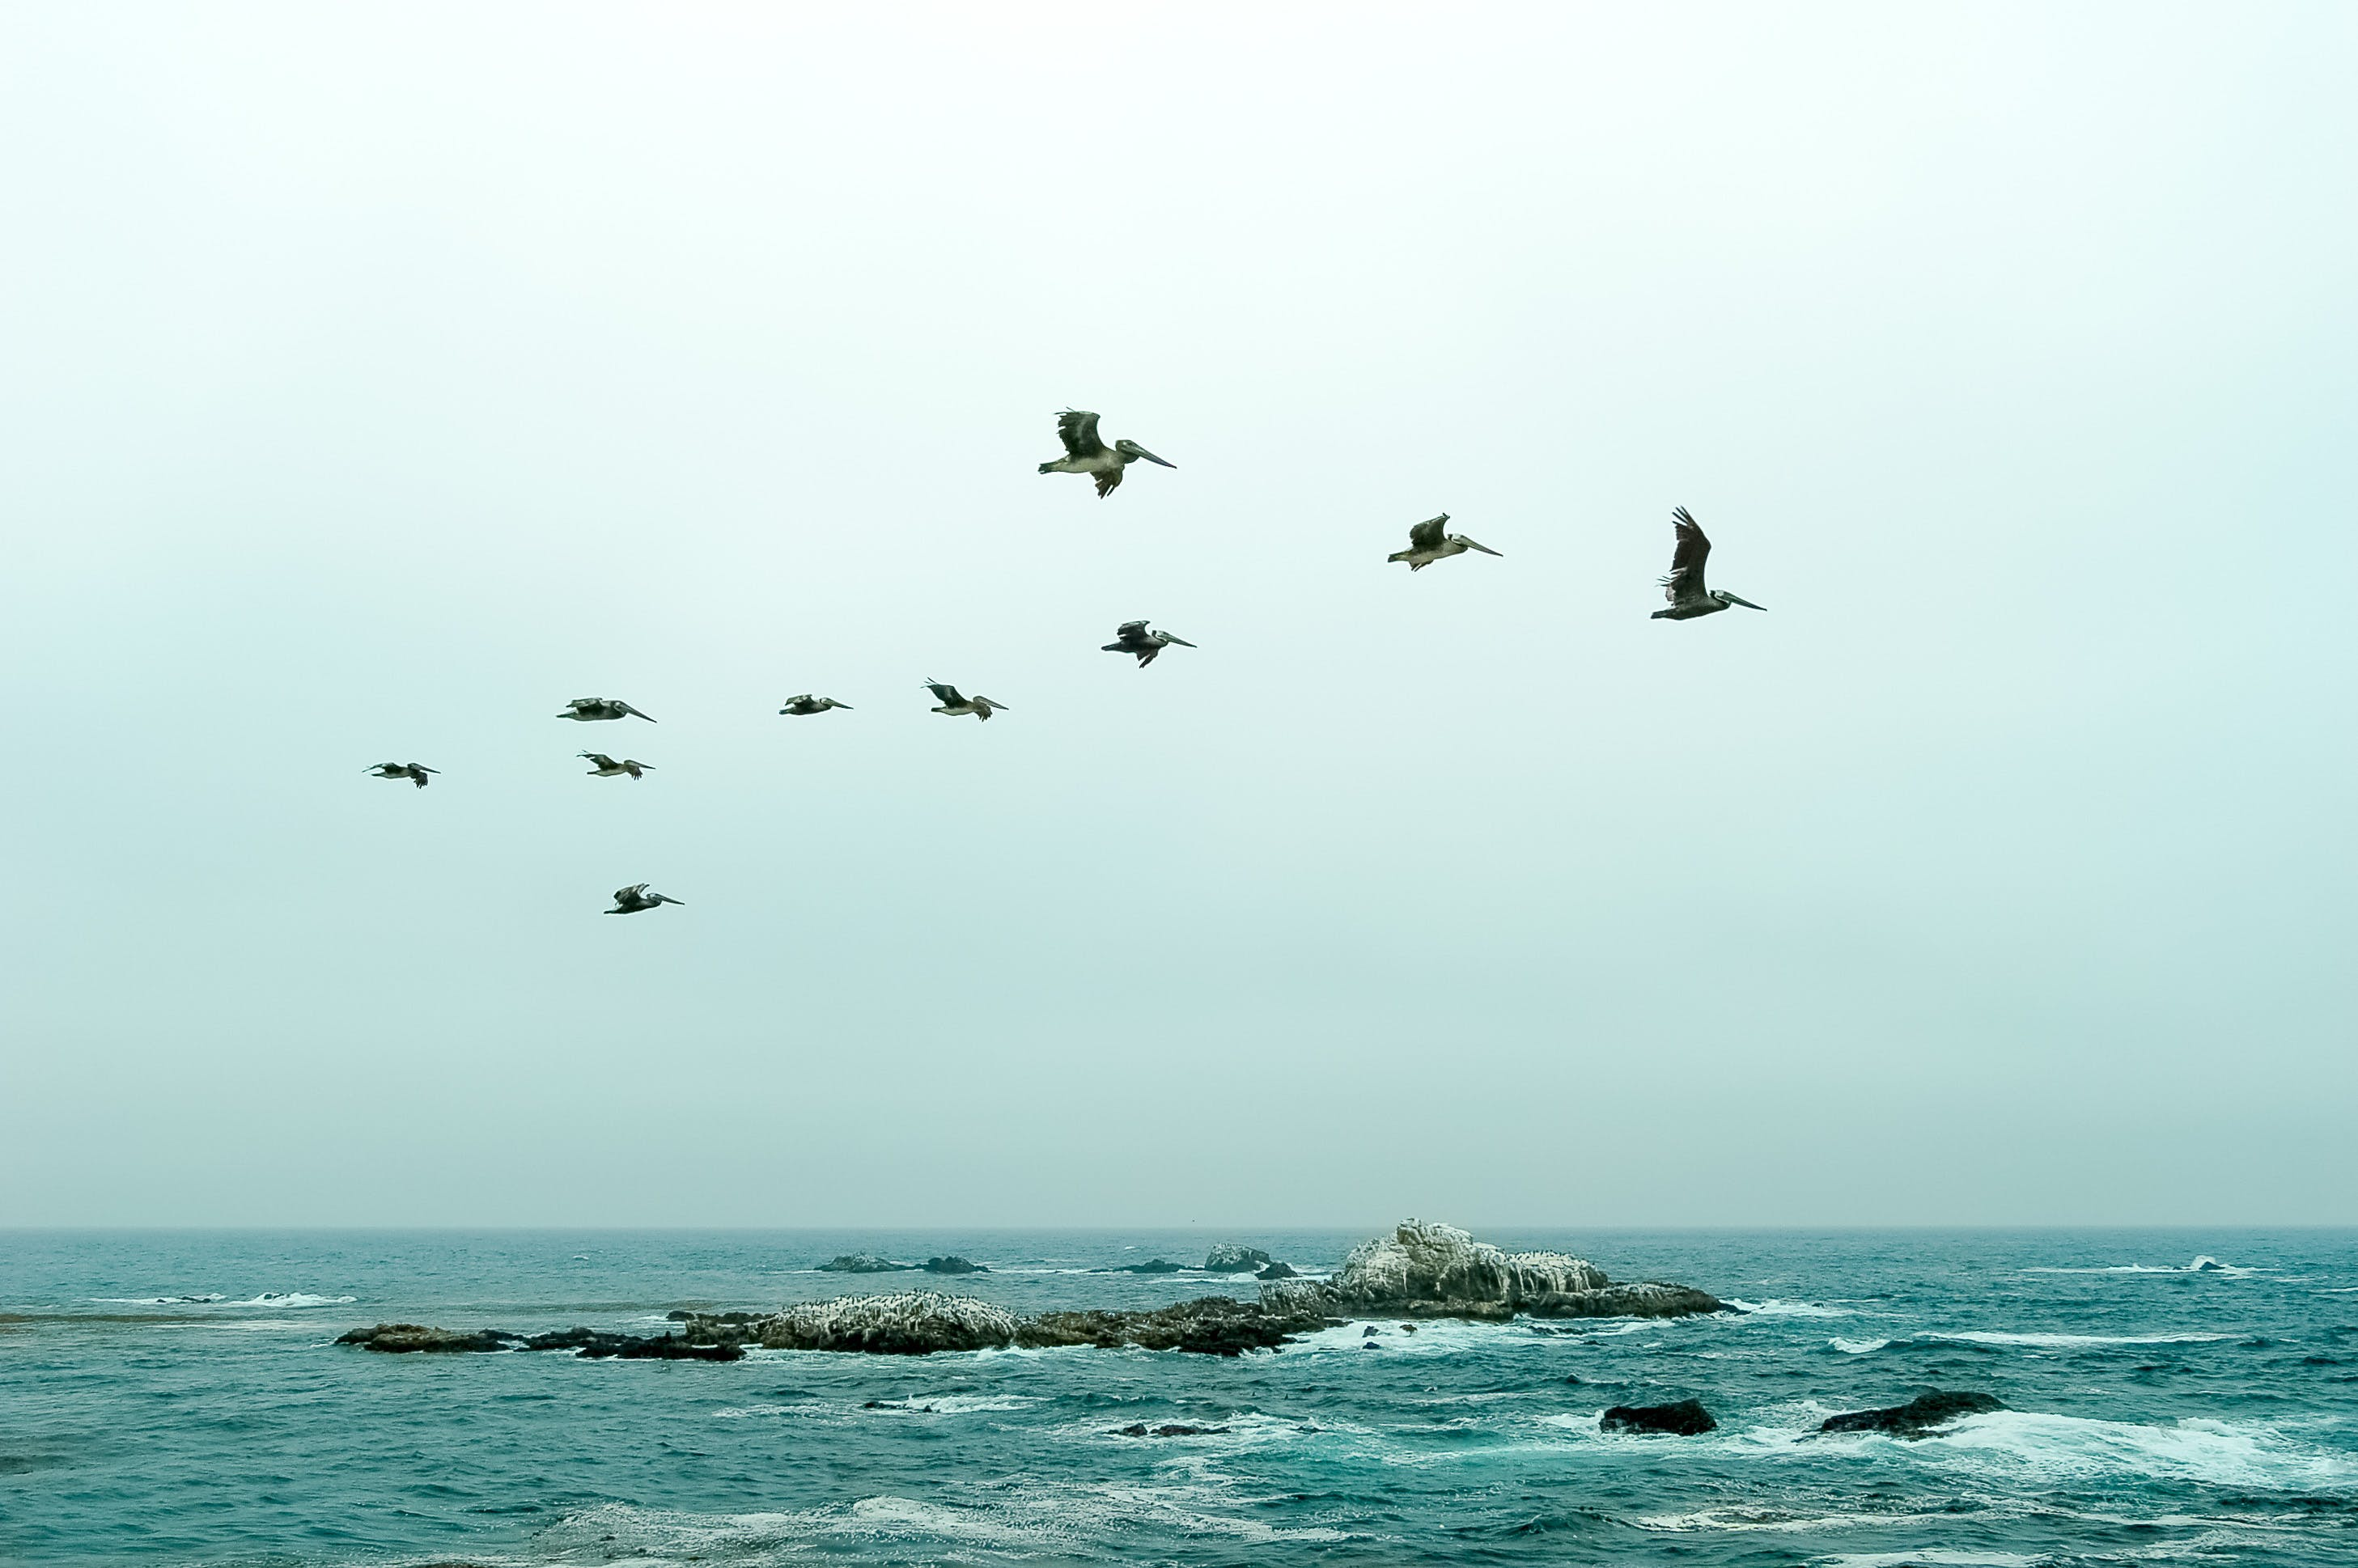 Free stock photo of formation, no people, no person, ocean